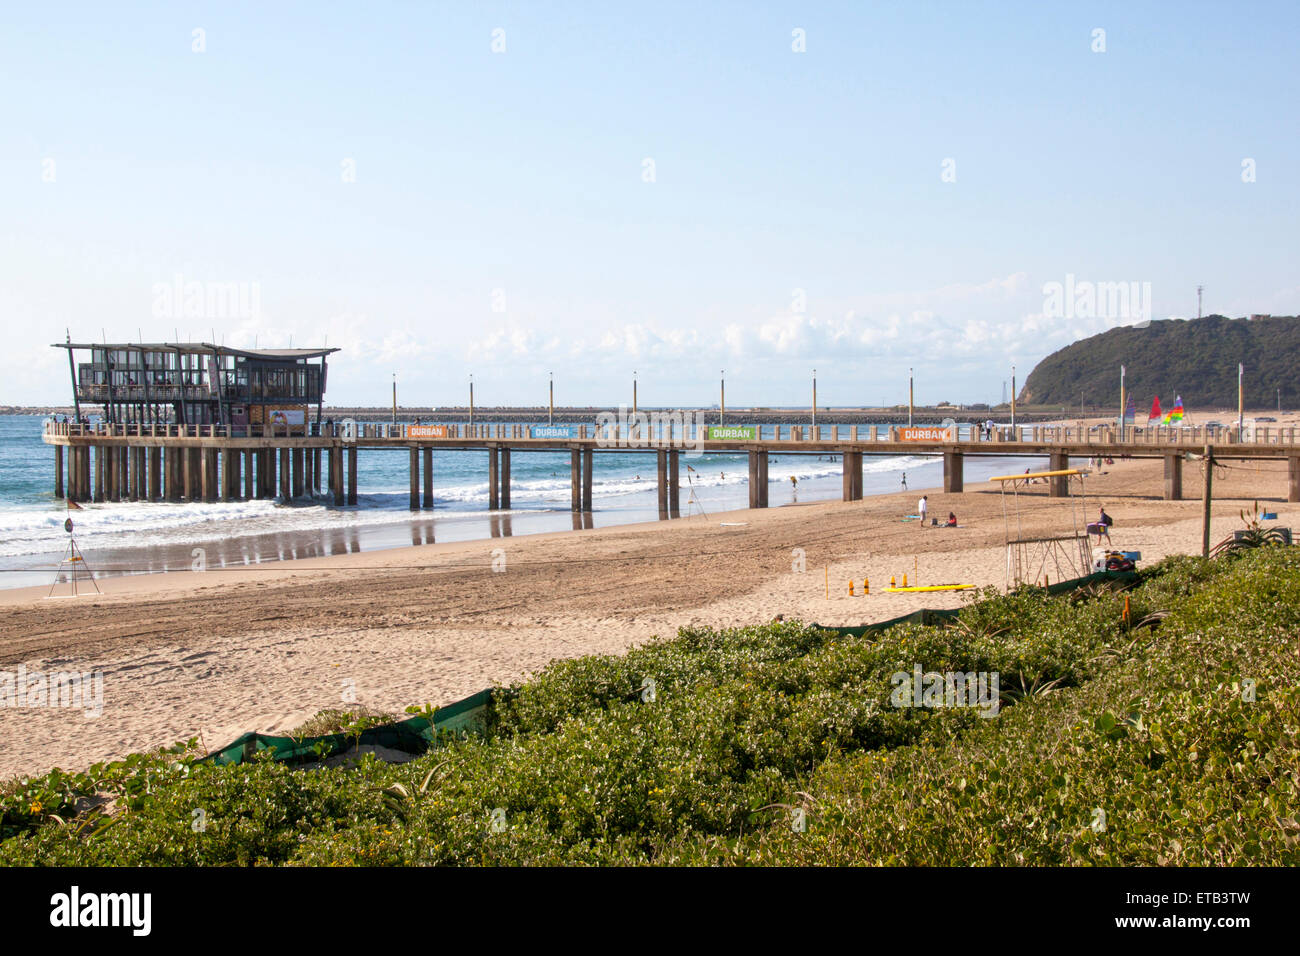 DURBAN, SOUTH AFRICA - JUNE 7, 2015: Many unknown people on Addington beach at Vetch's pier in Durban, South - Stock Image